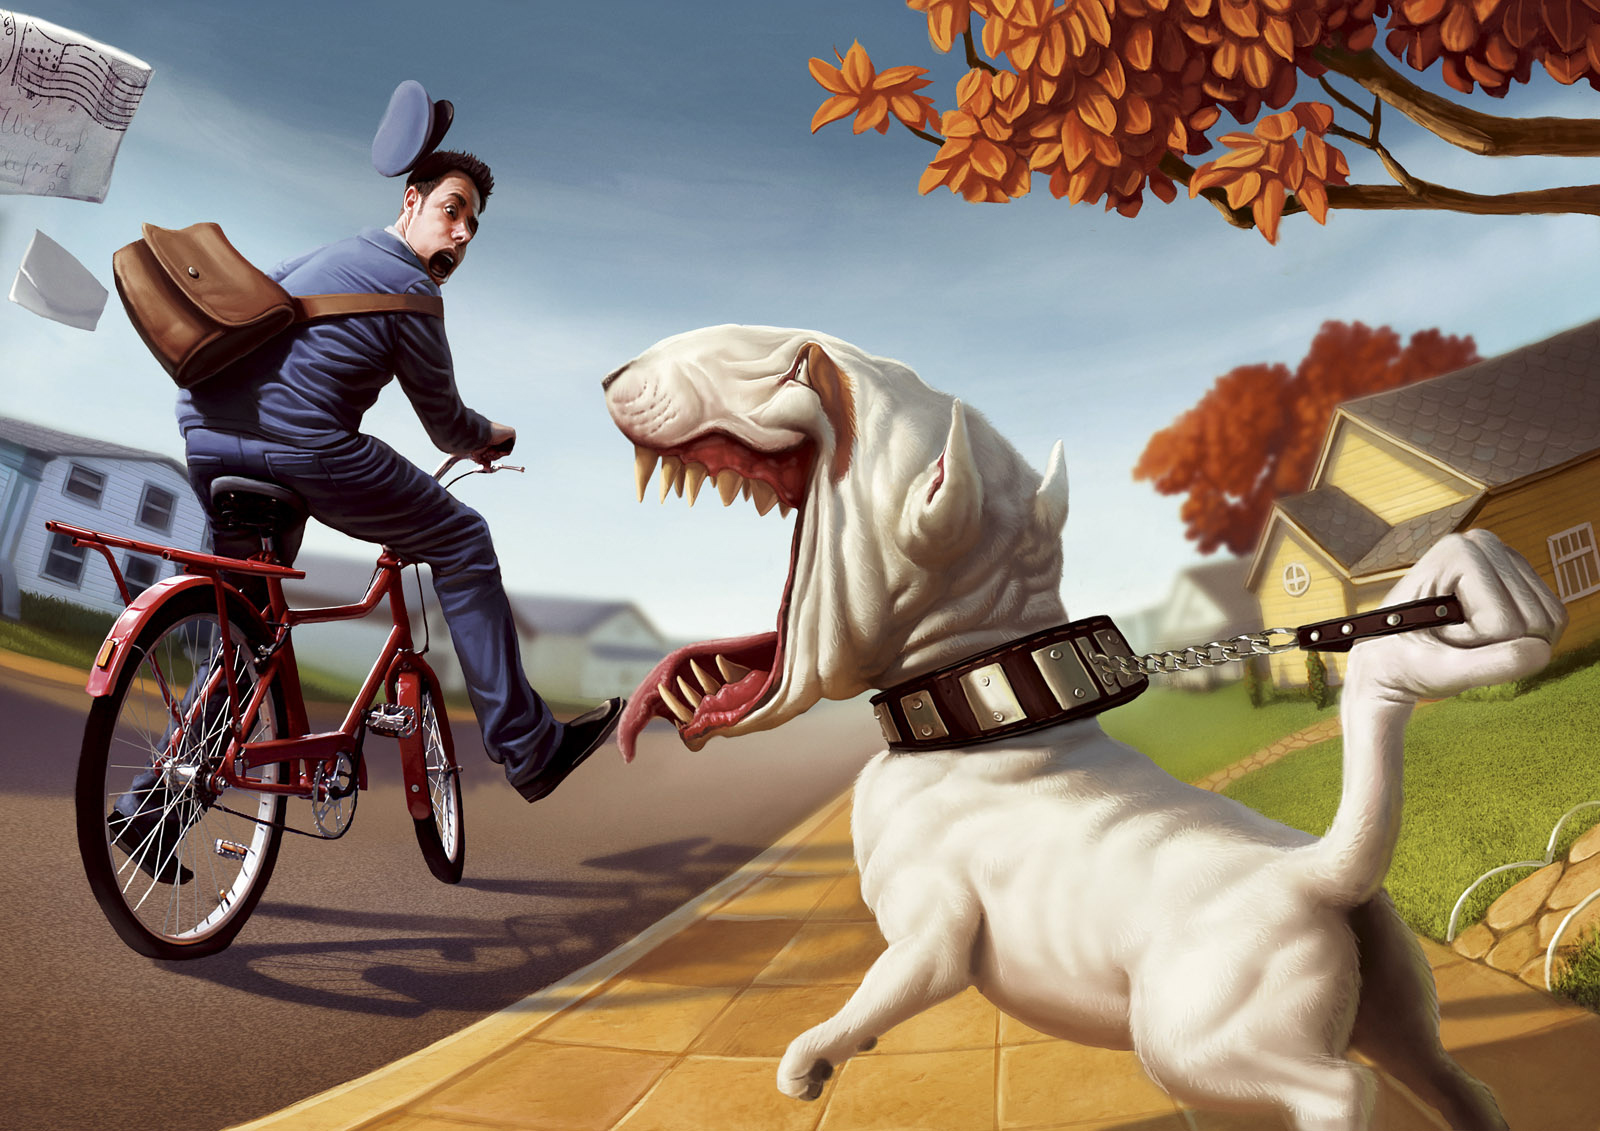 art blog - tiago hoisel - empty kingdom